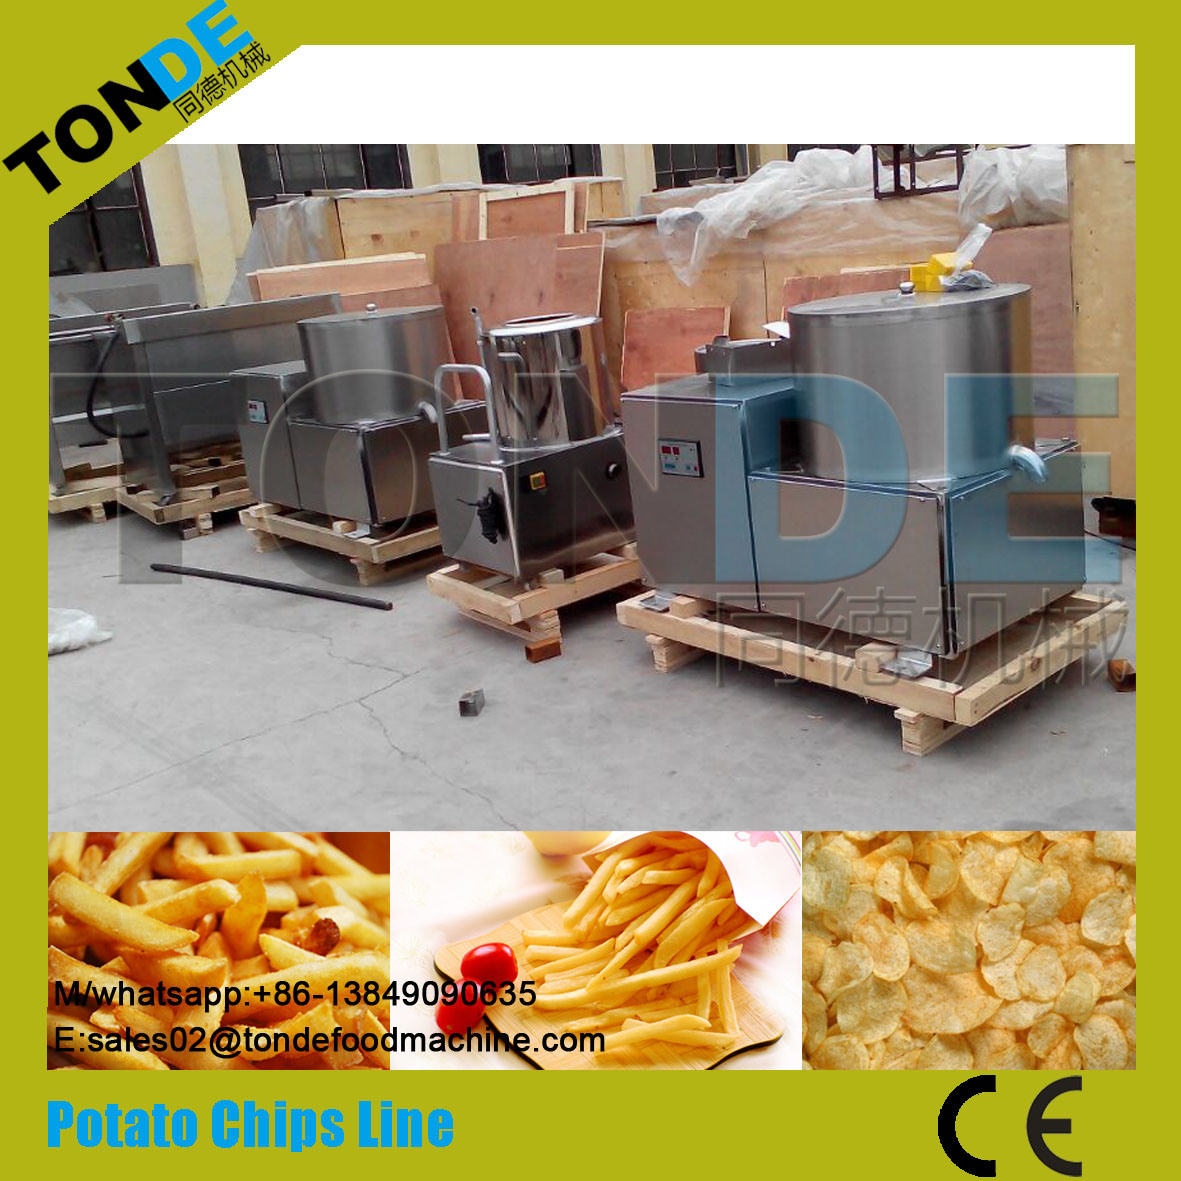 Automatic Electric Fried Plain Wavy Potato Chips Making Machine